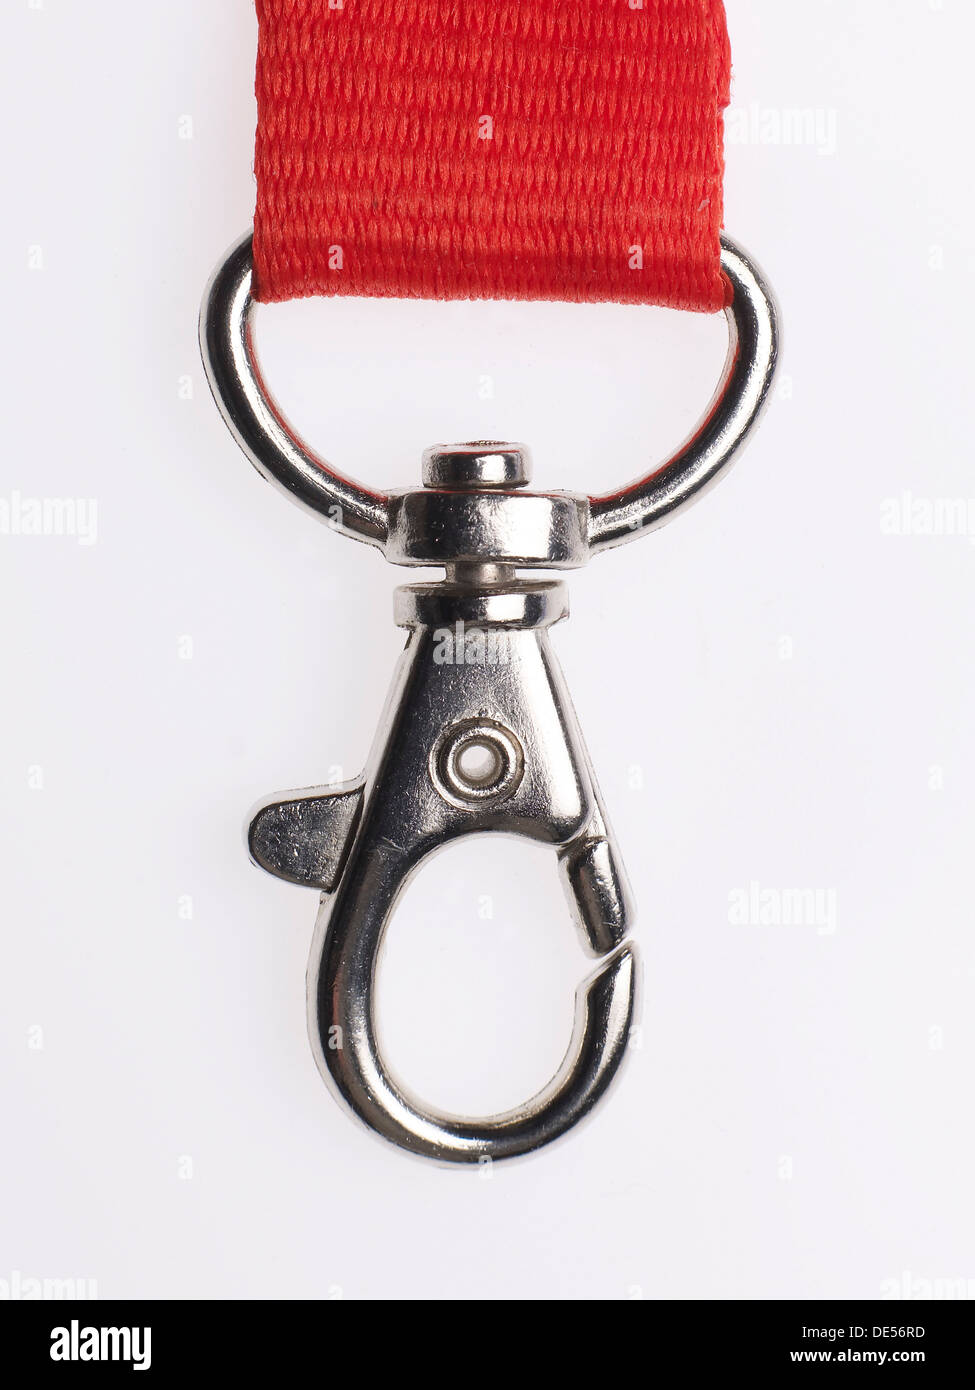 Snap hook on a red lanyard - Stock Image